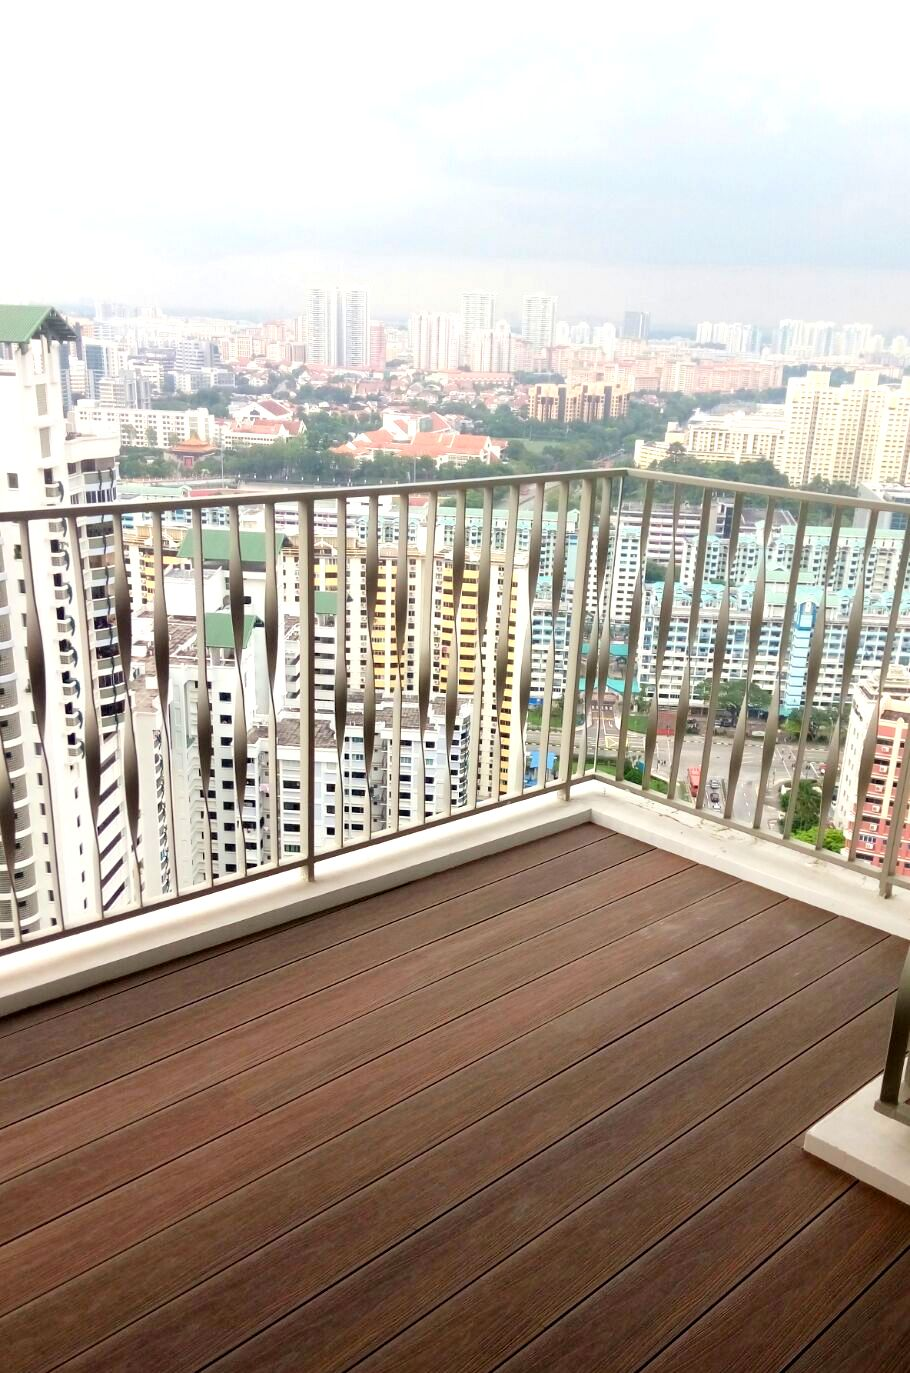 WPC Decking installed at a balcony in Toh Payoh, Singapore